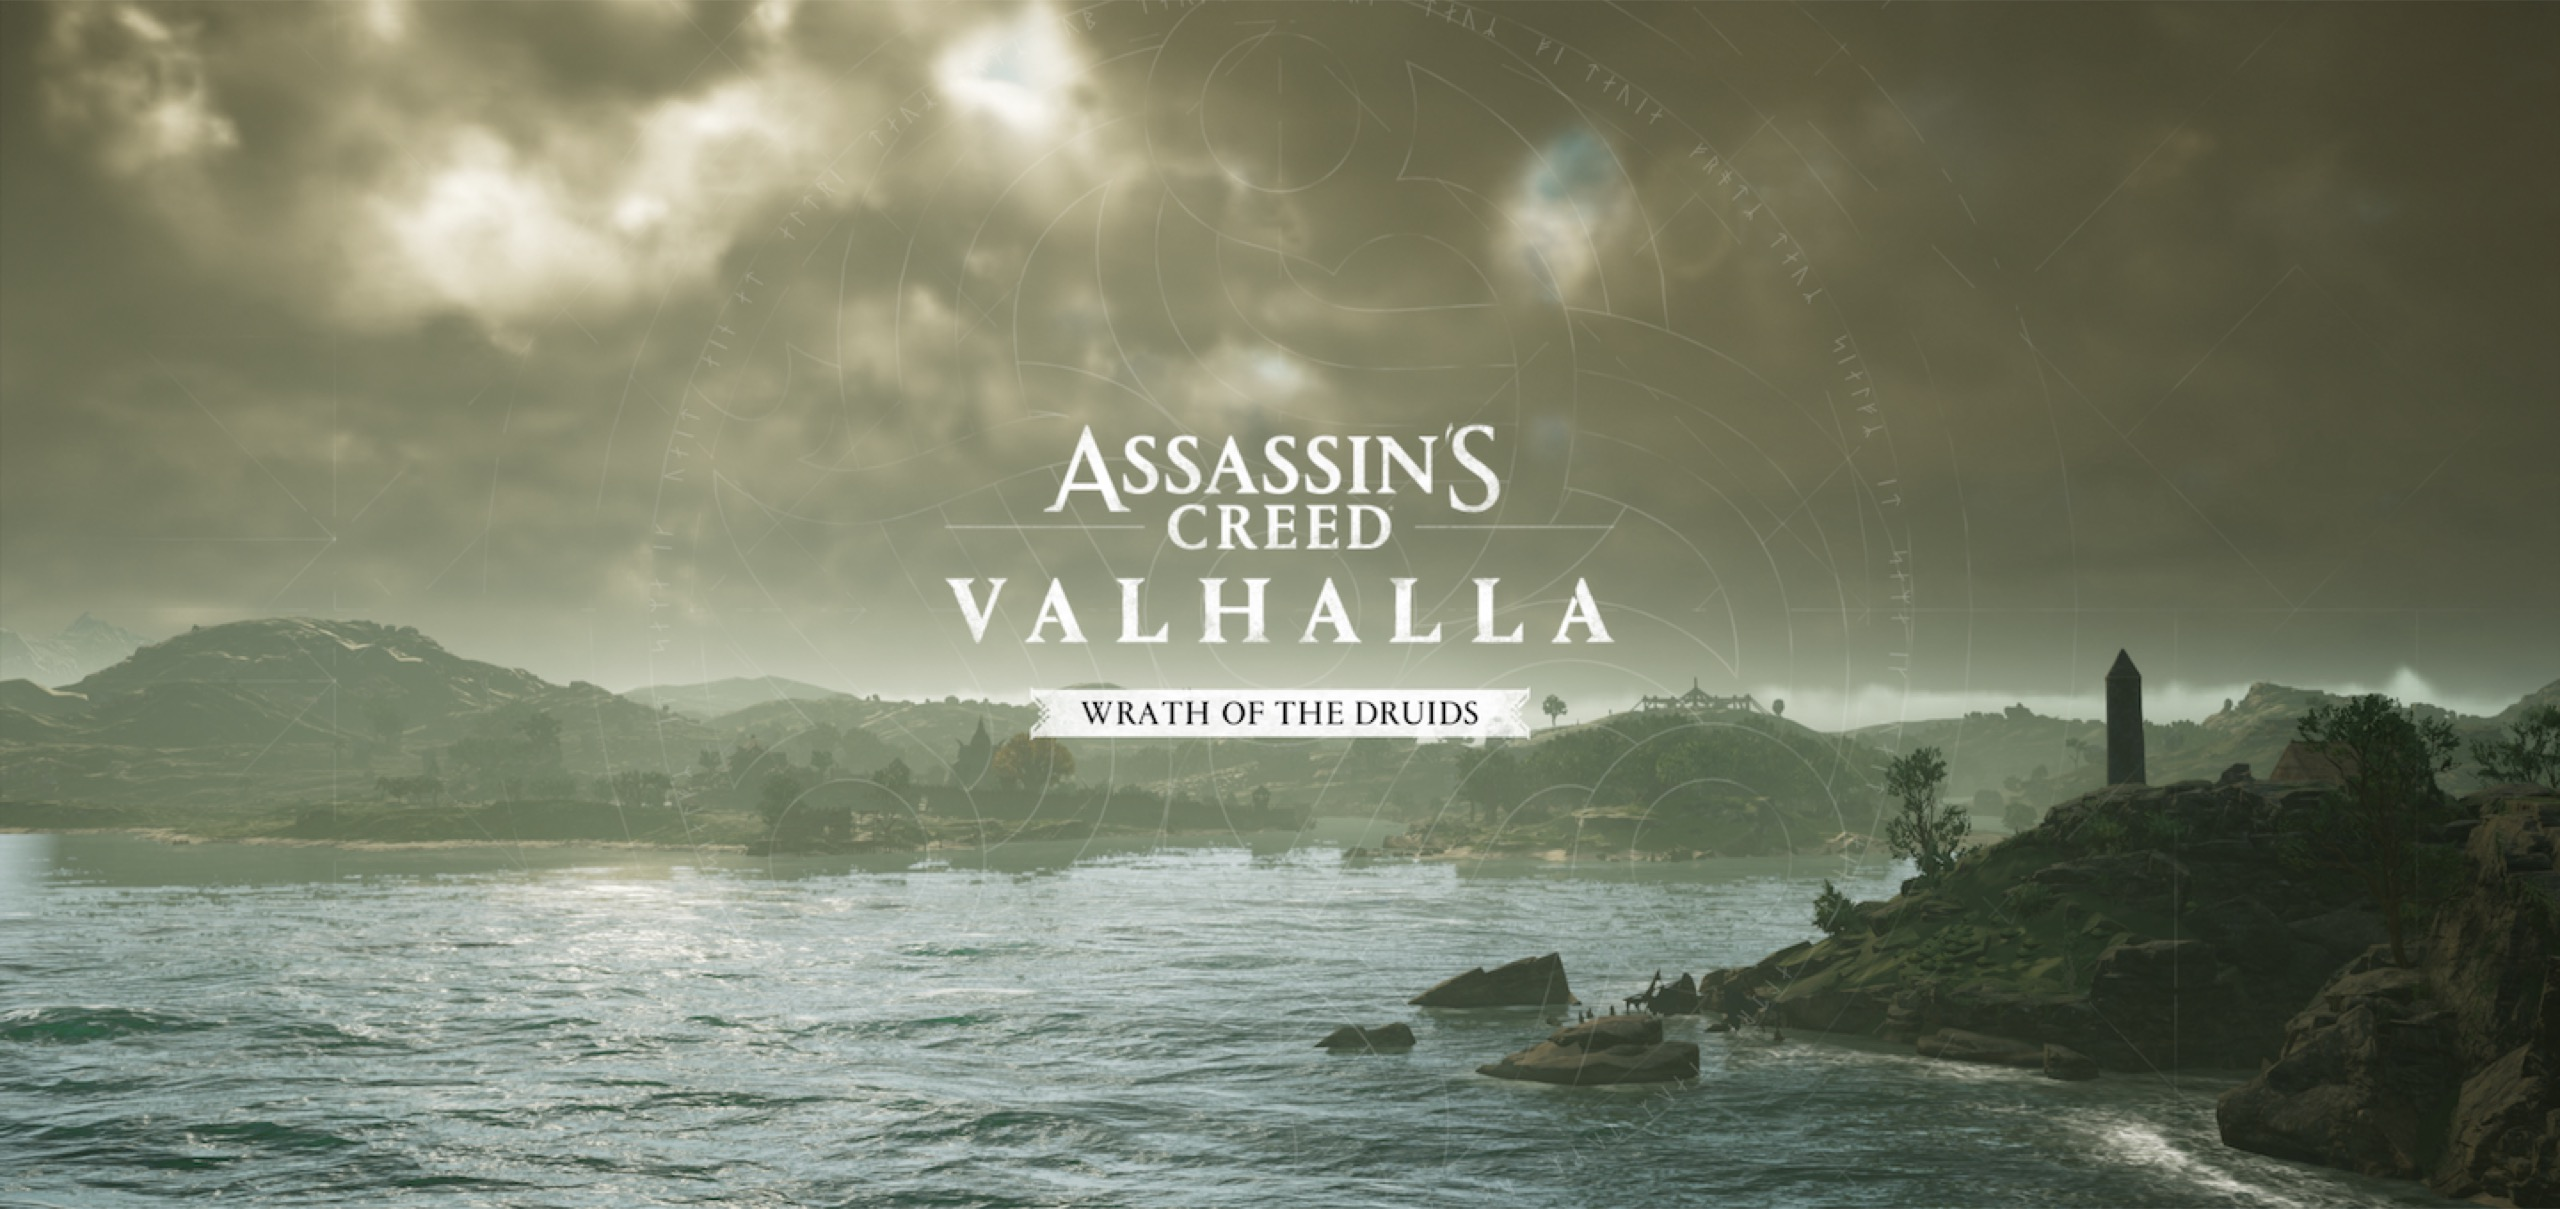 Assassin's Creed Valhalla Wrath of the Druids DLC